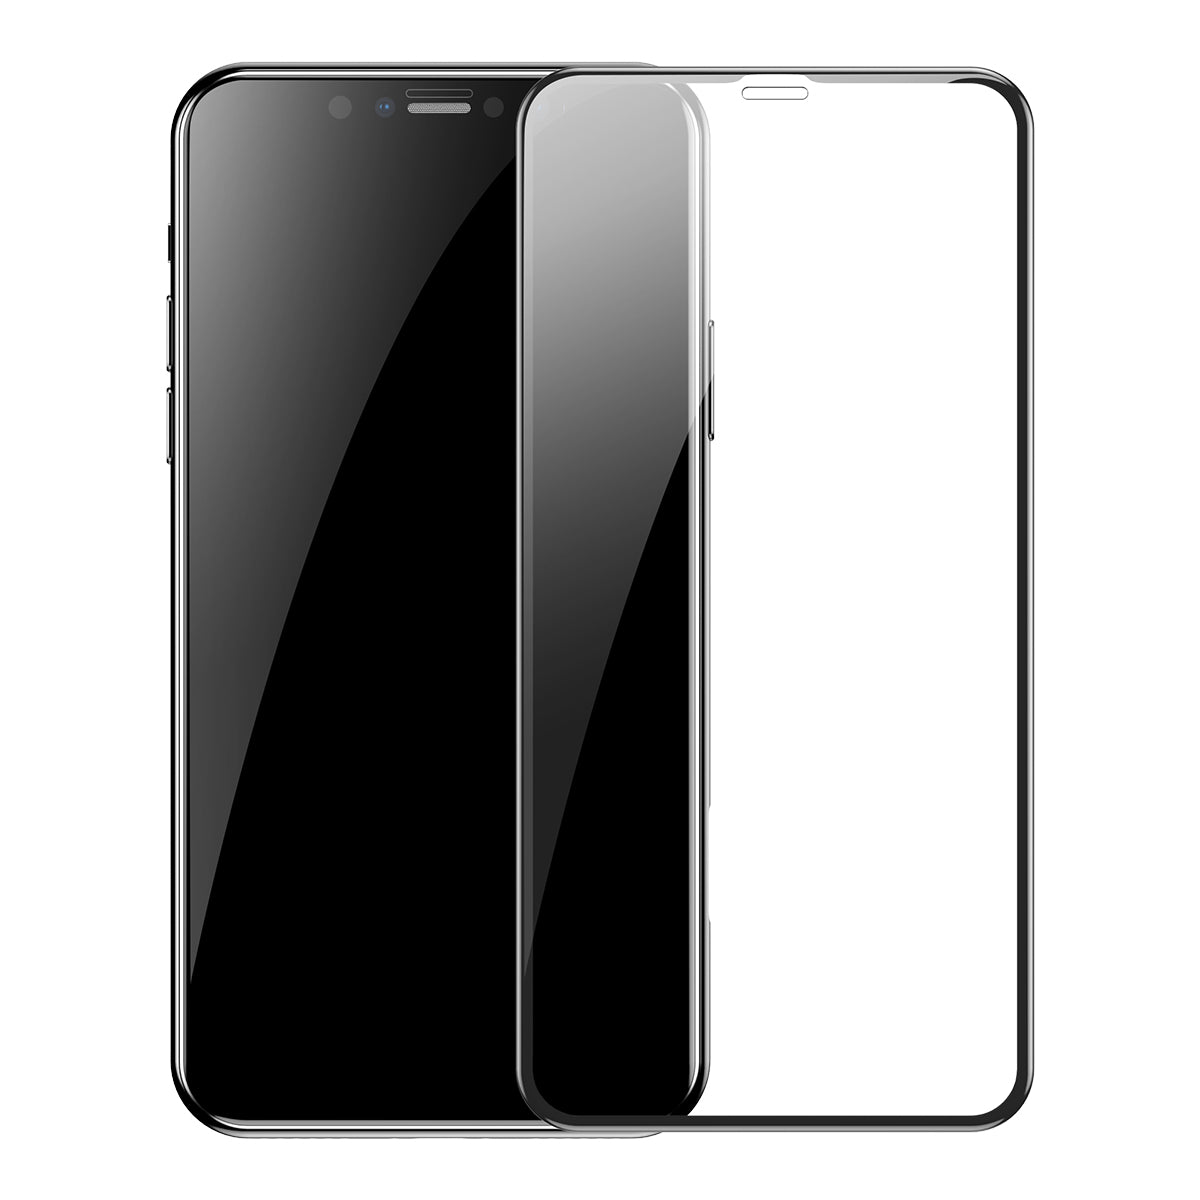 BASEUS 0.3mm Full-screen and Full-glass Tempered Glass Film (2 pcs) for iPhone 11 Pro Max / 11 Pro / 11 / XS Max / XS / X / XR